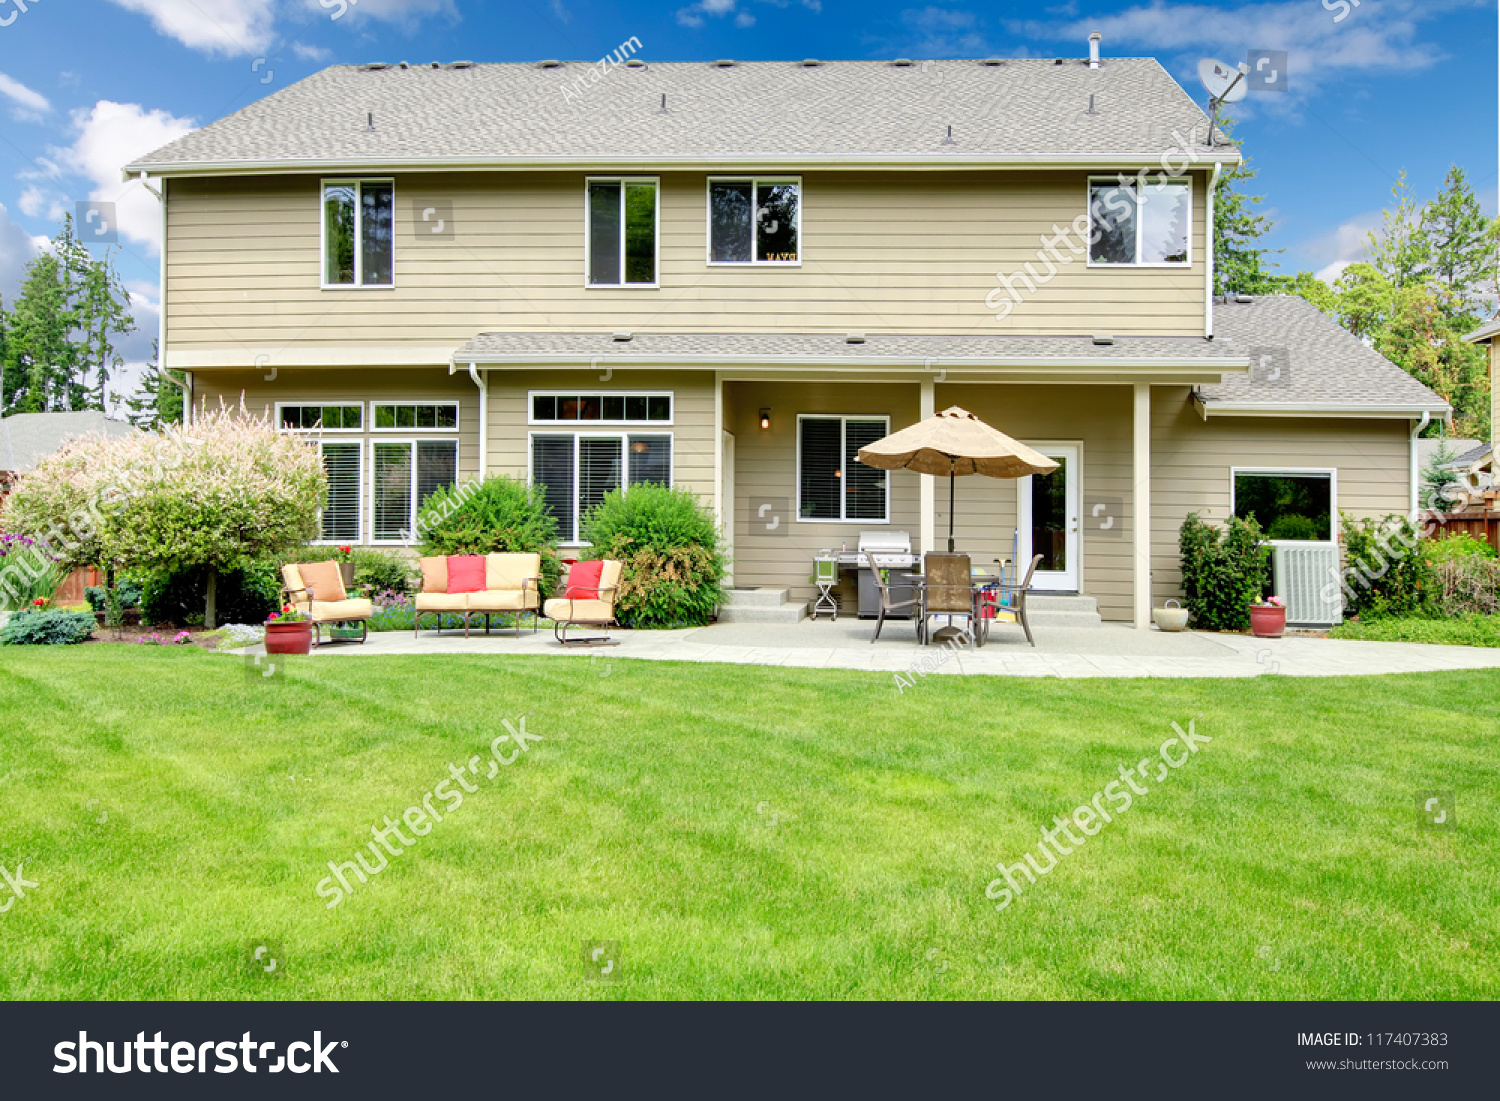 beautiful large house with backyard with sitting area and umbrella